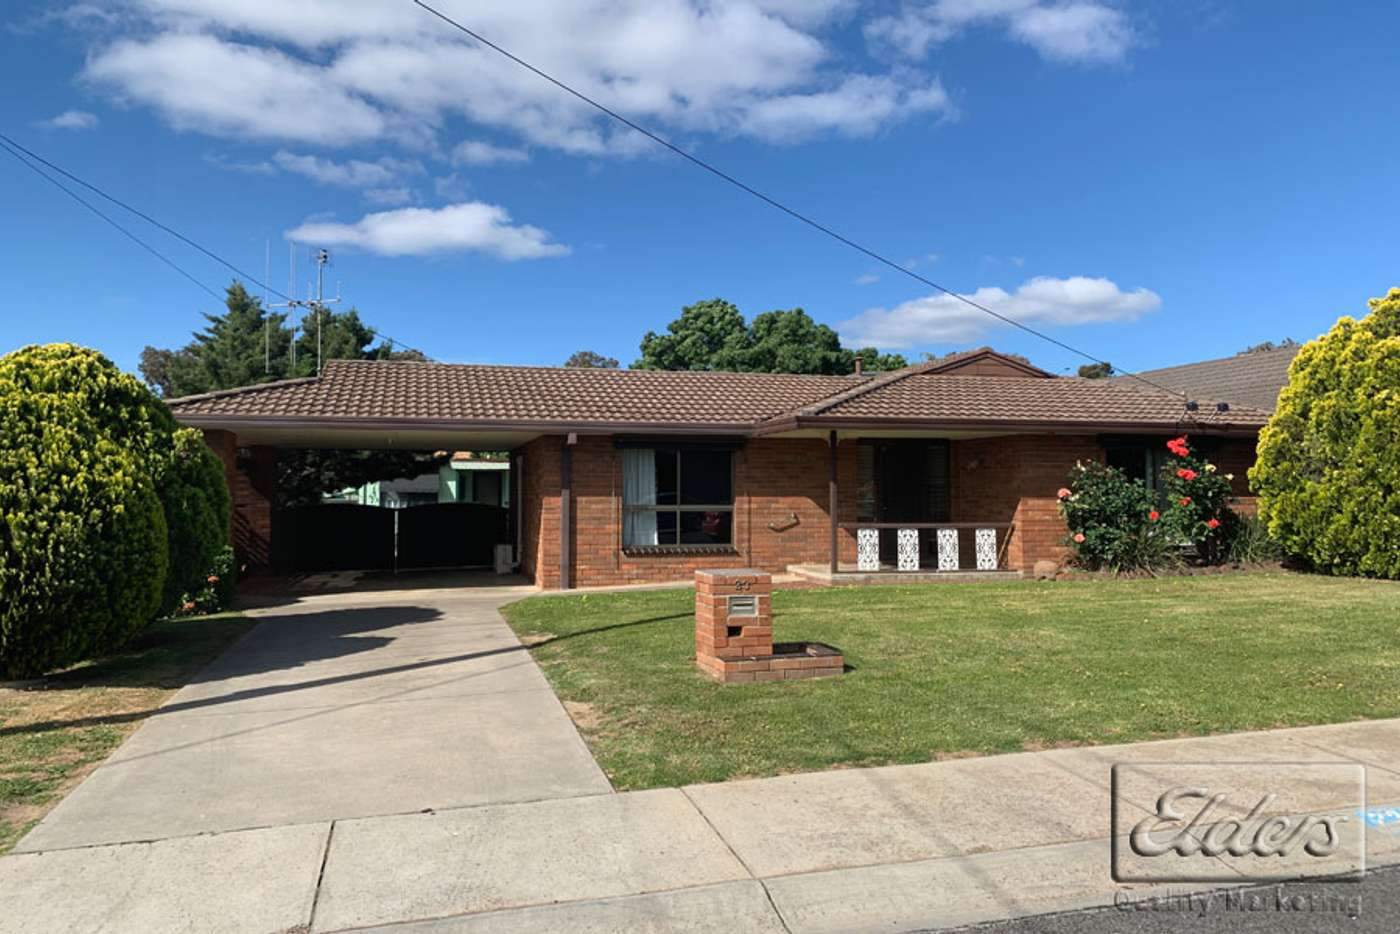 Main view of Homely house listing, 23 Ridgeway Crescent, Kennington VIC 3550